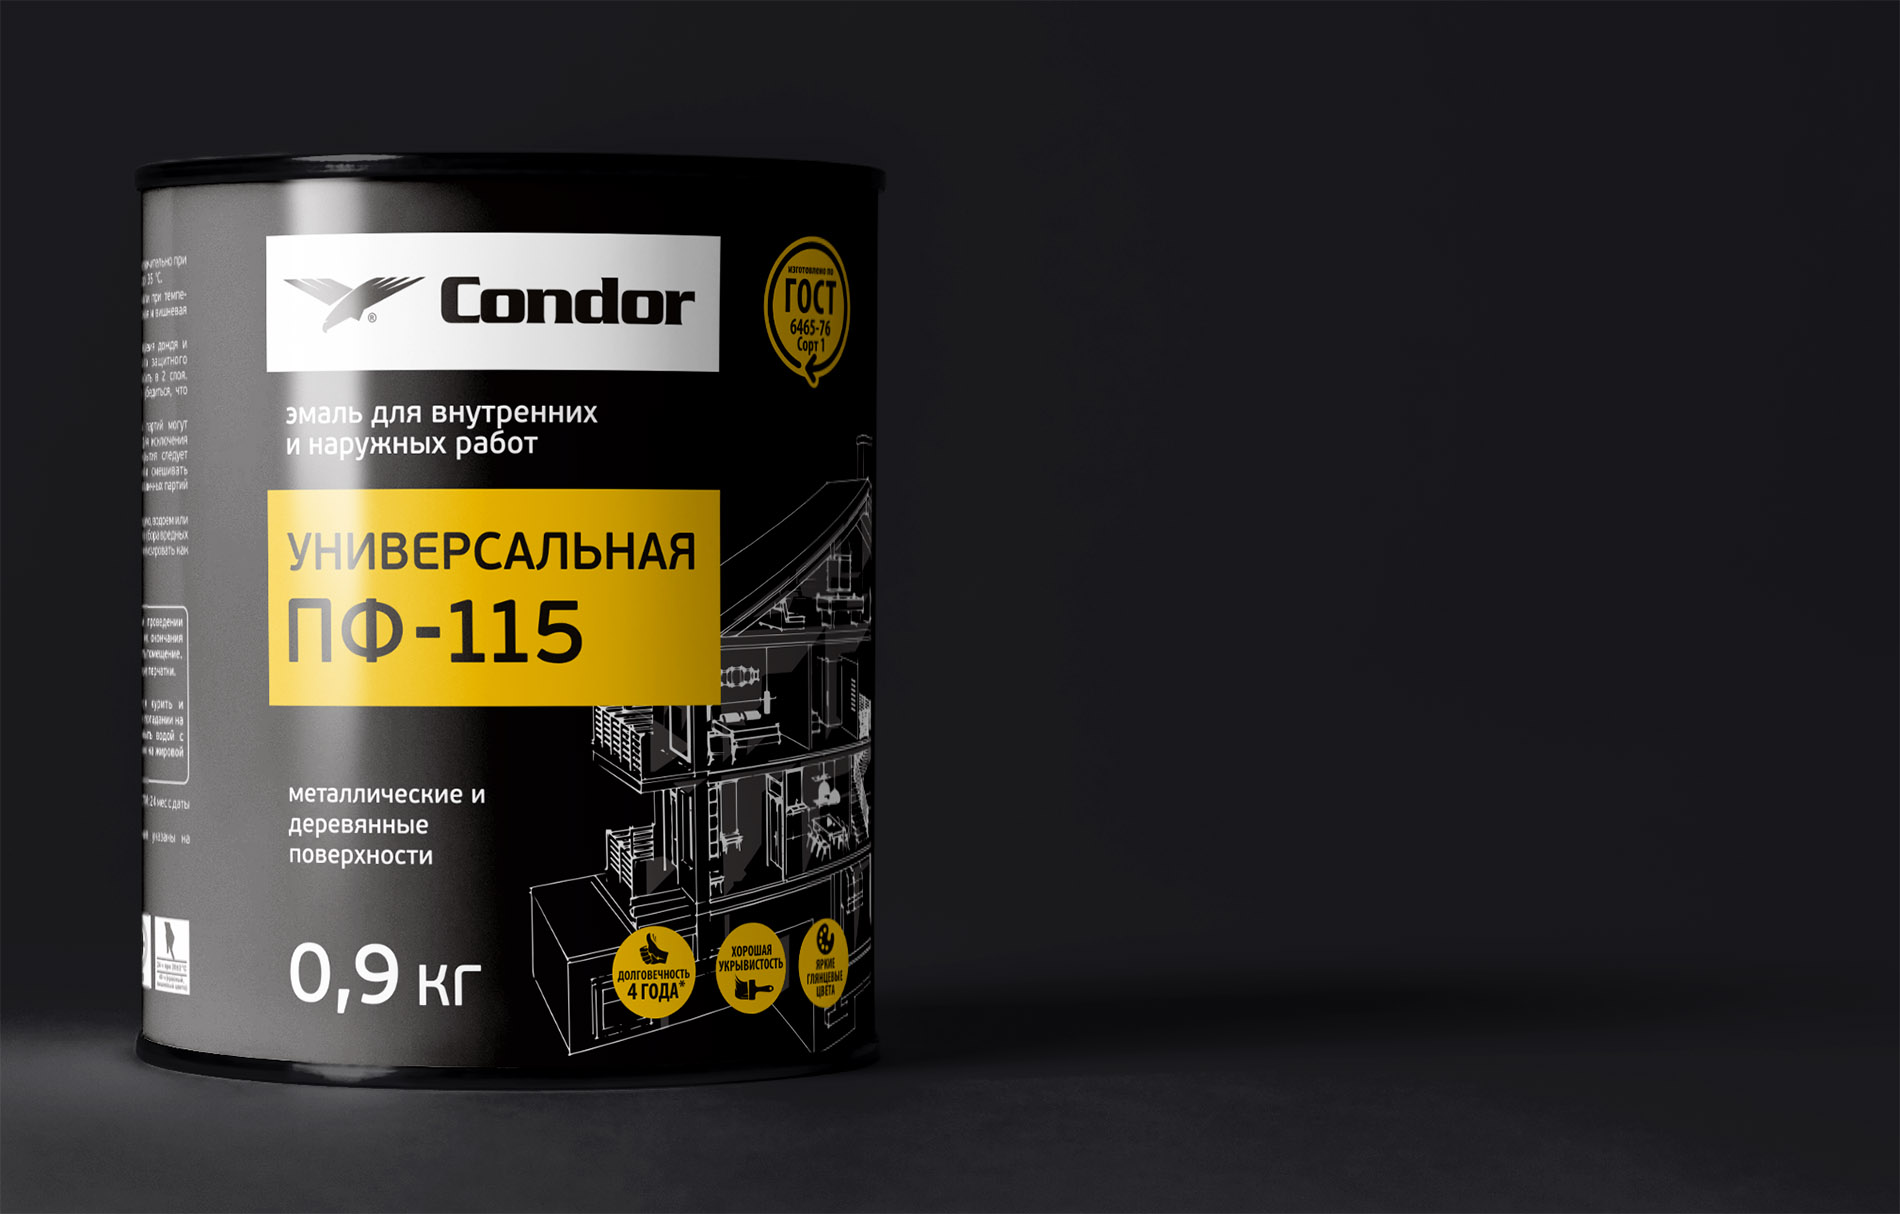 Condor. Enamel paint packaging